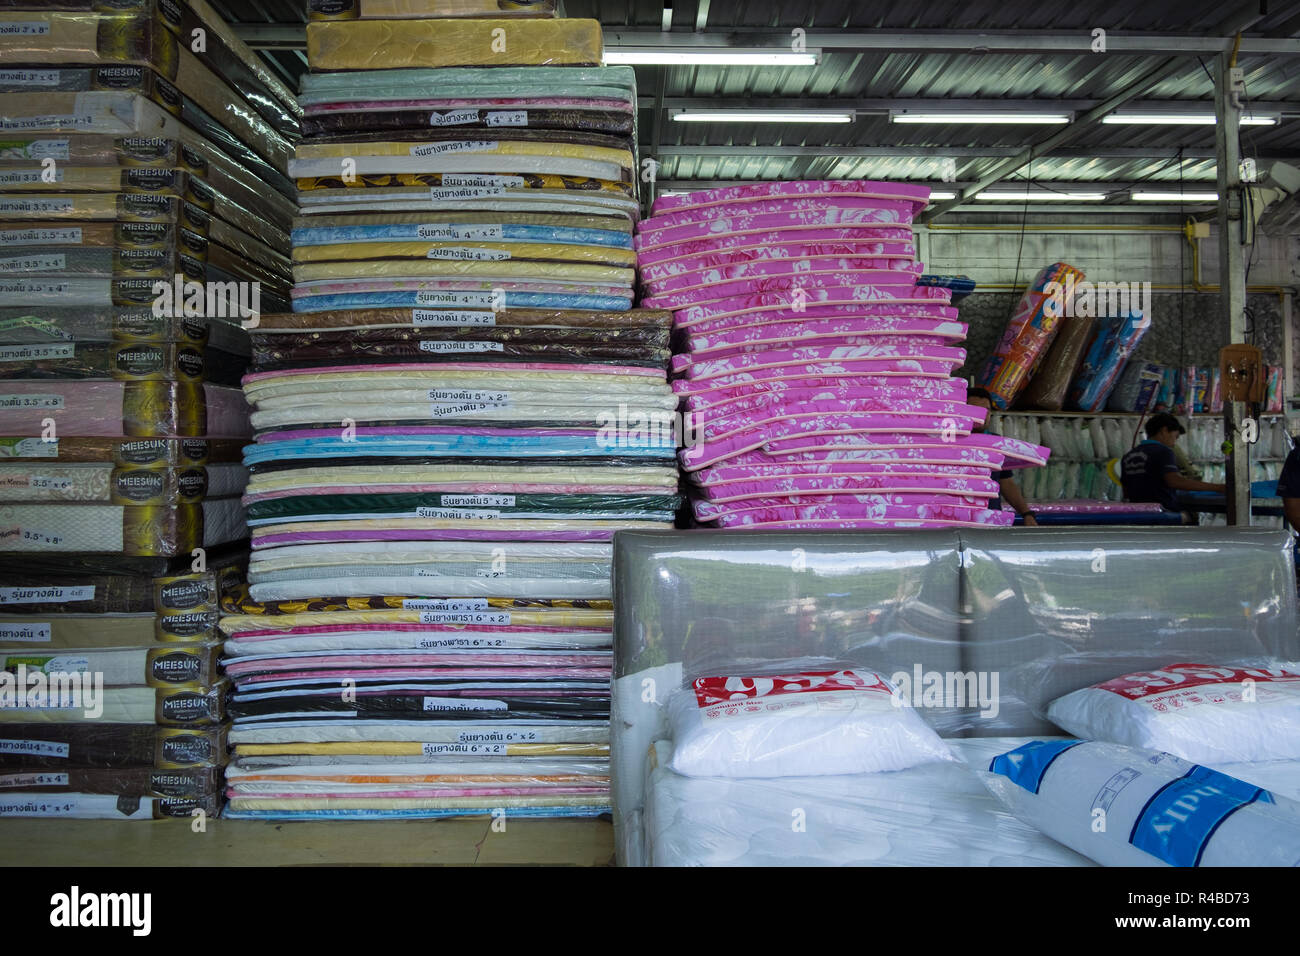 A store bursting with mattresses in Hat Yai, Thailand. - Stock Image